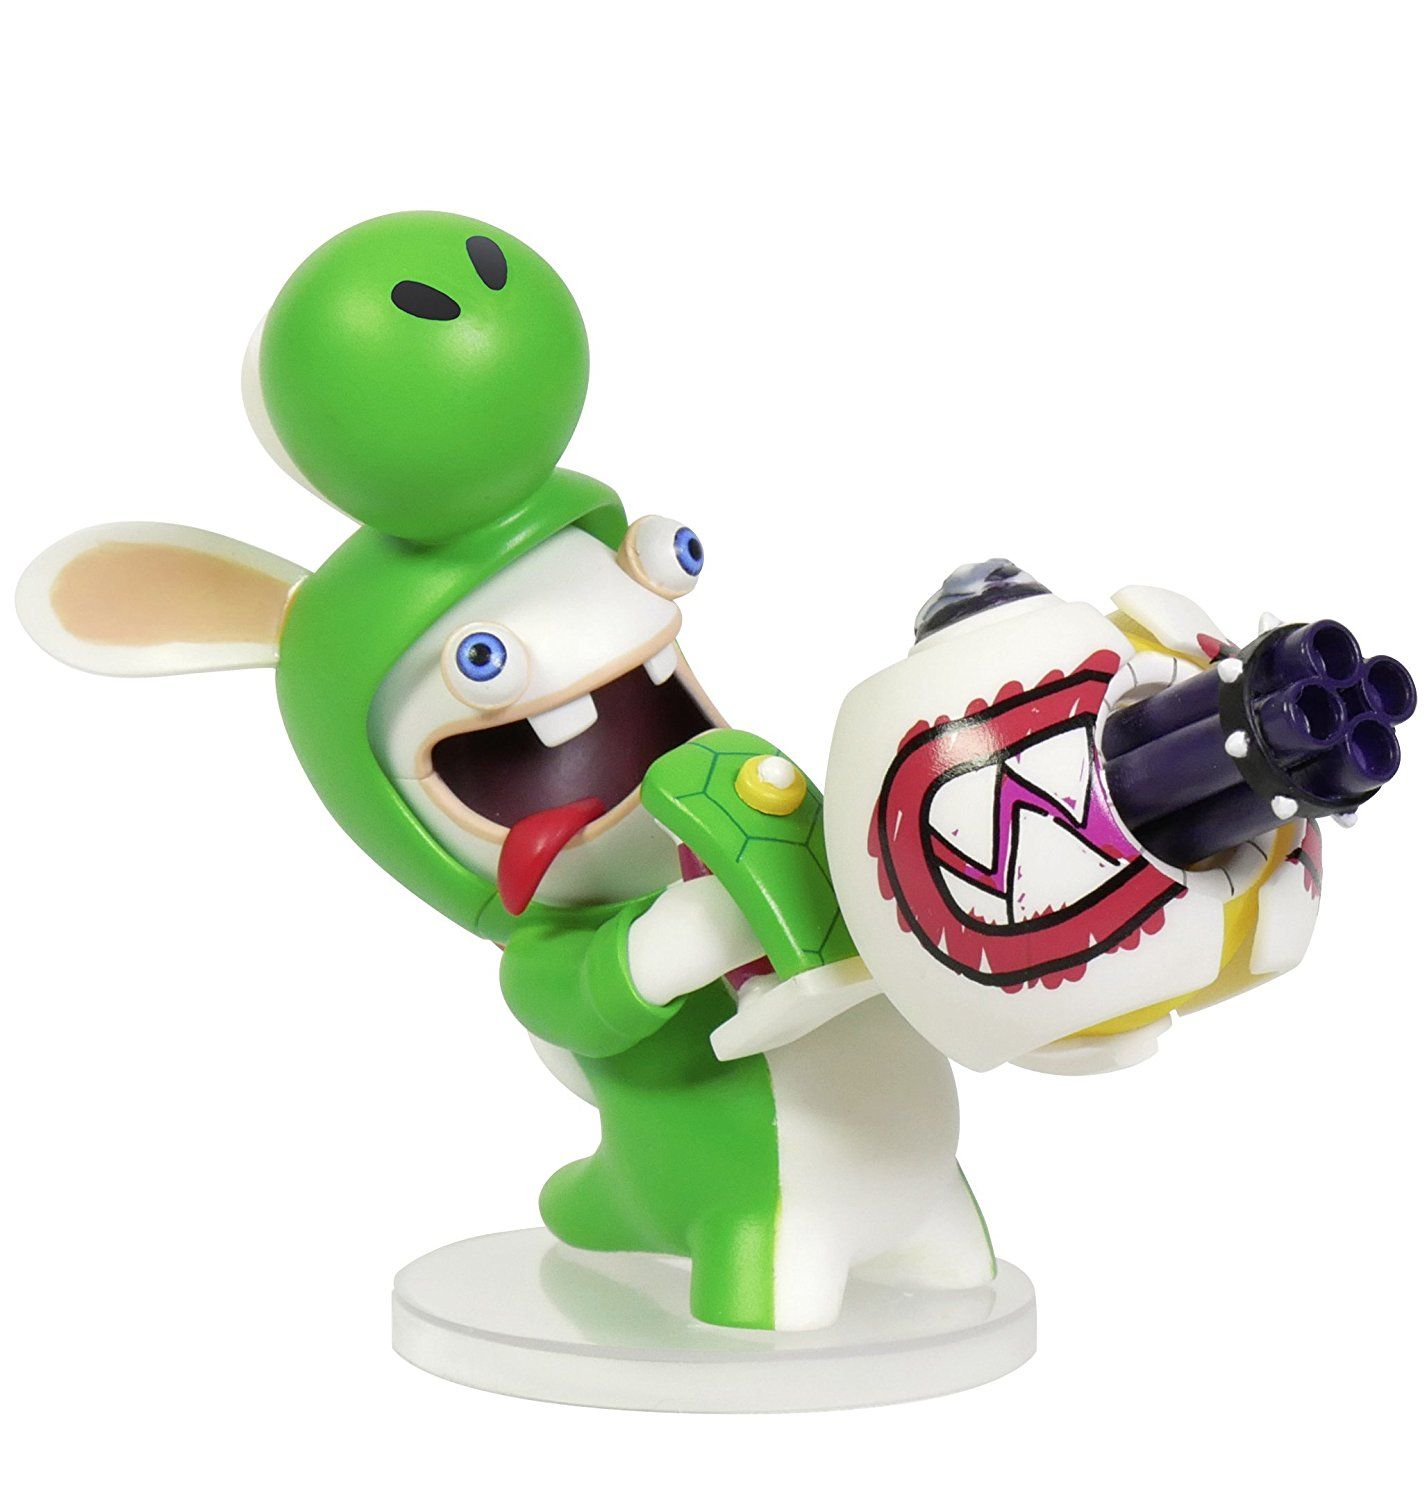 Mario + Rabbids Kingdom Battle: Rabbid Yoshi 3'' Figurine - 1